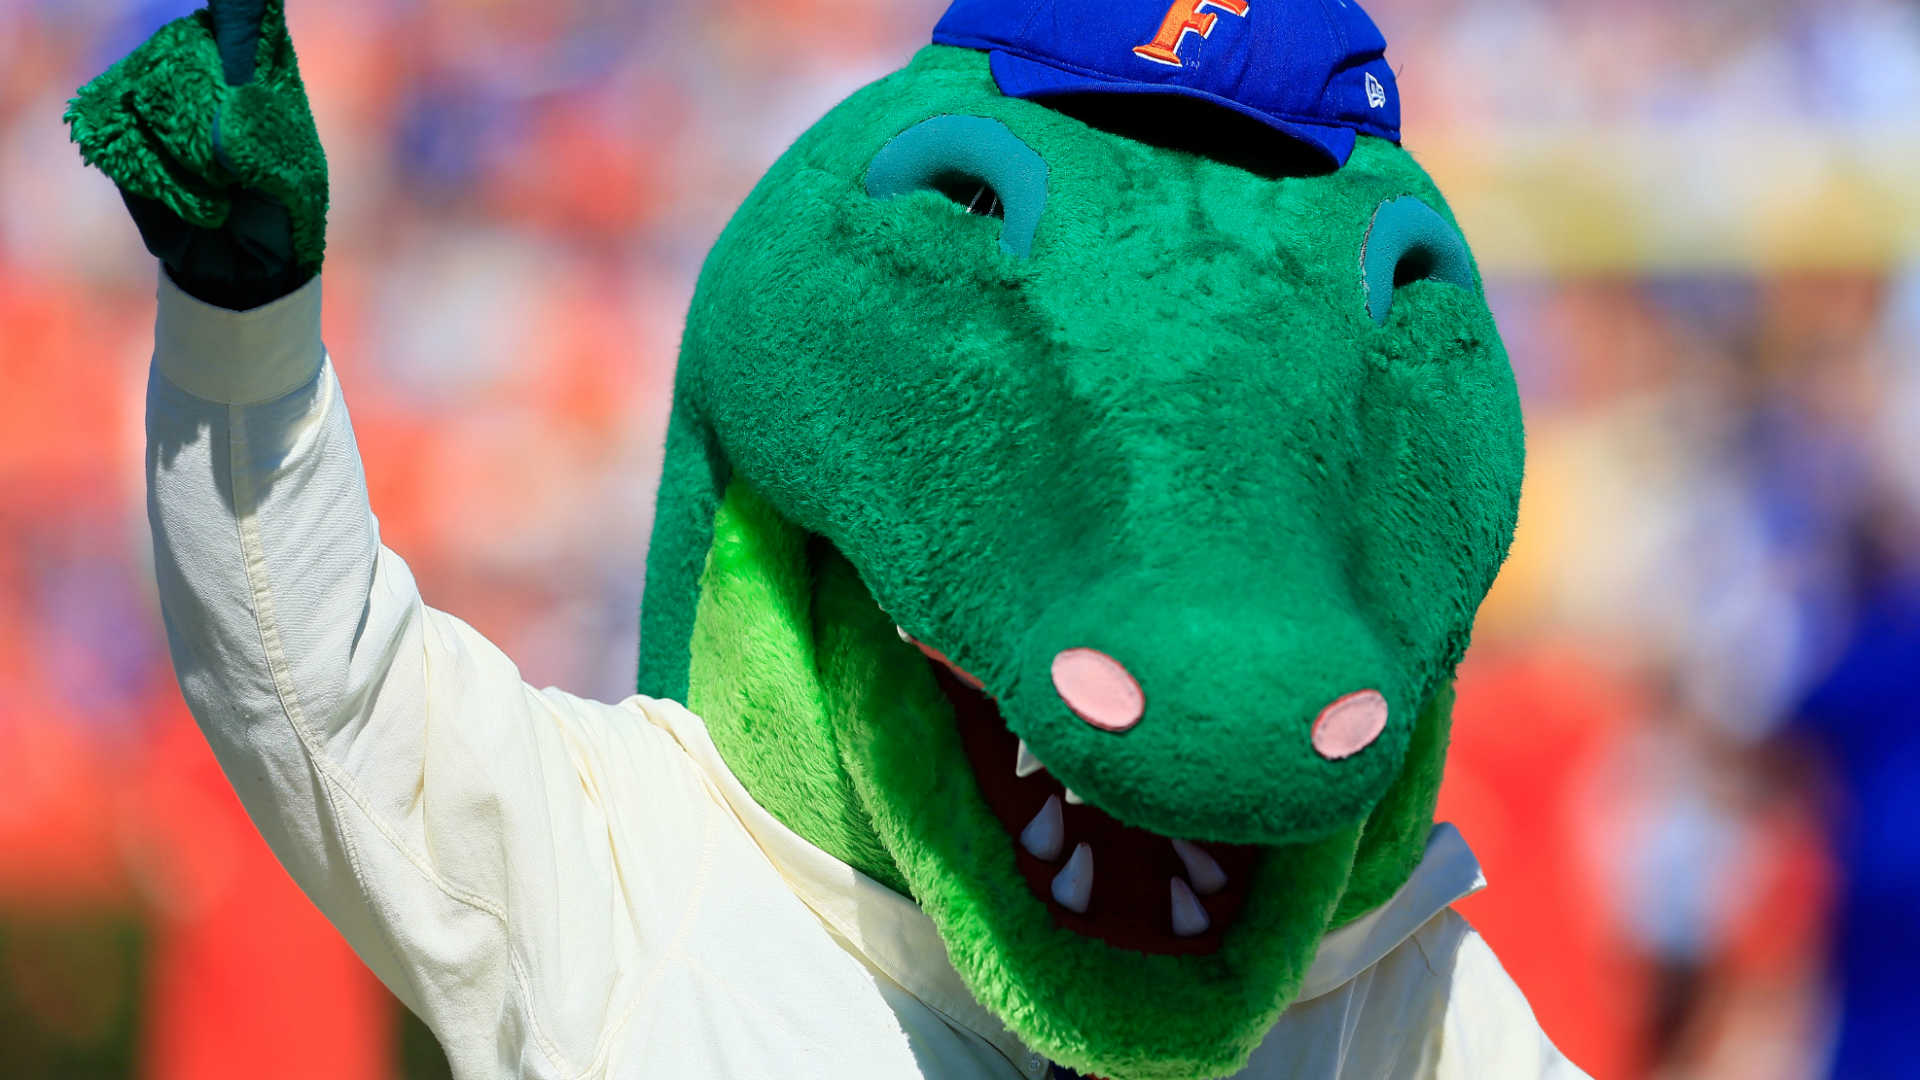 Albert the Gators' mascot shields a kid from a foul ball